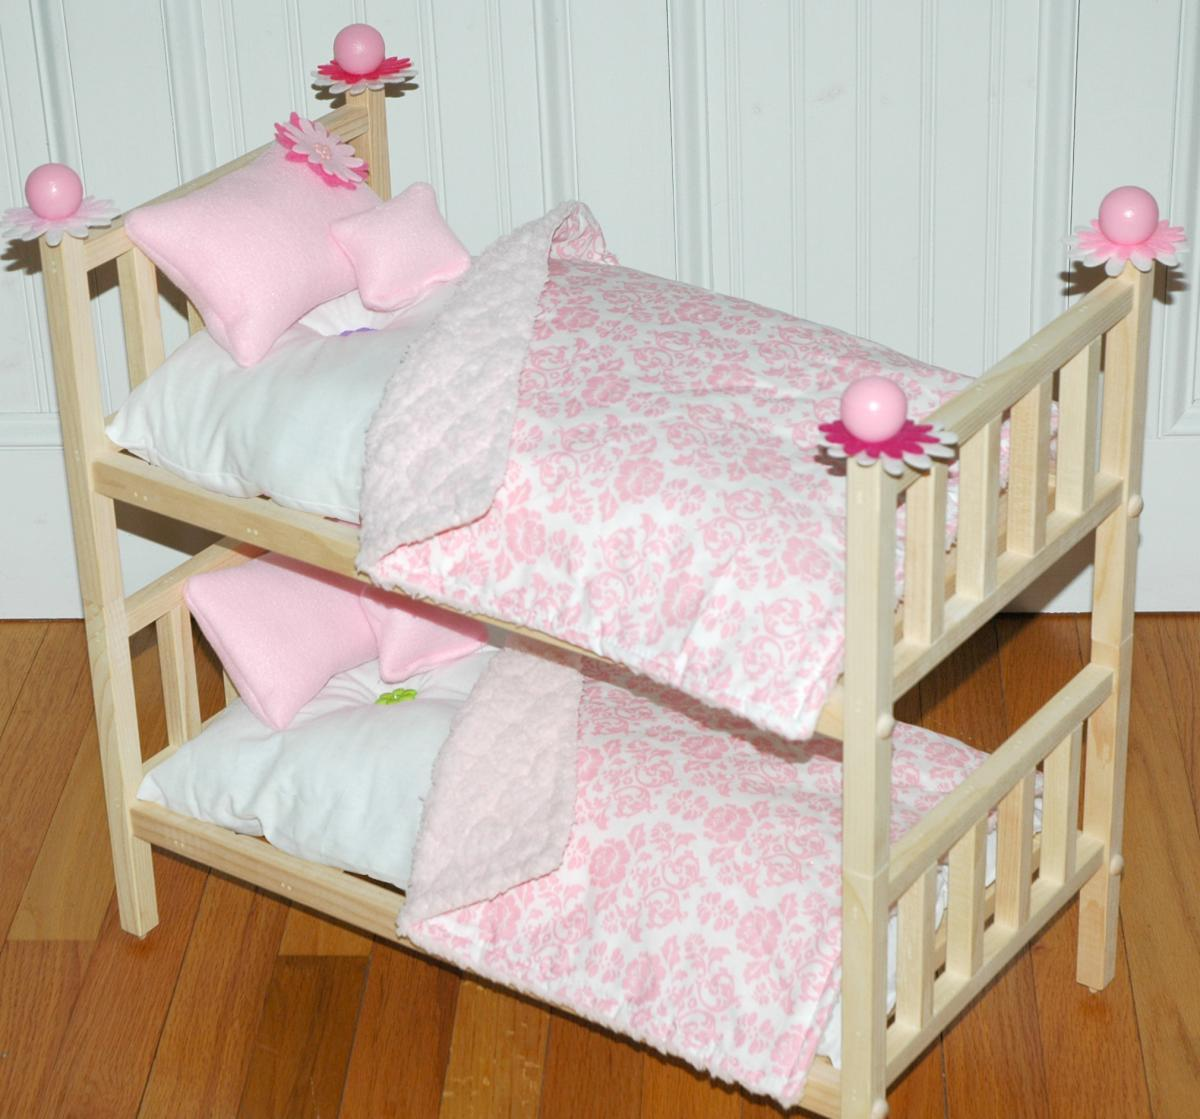 Bunk Bed Dolls: Doll Bunk Bed Perfectly Pink